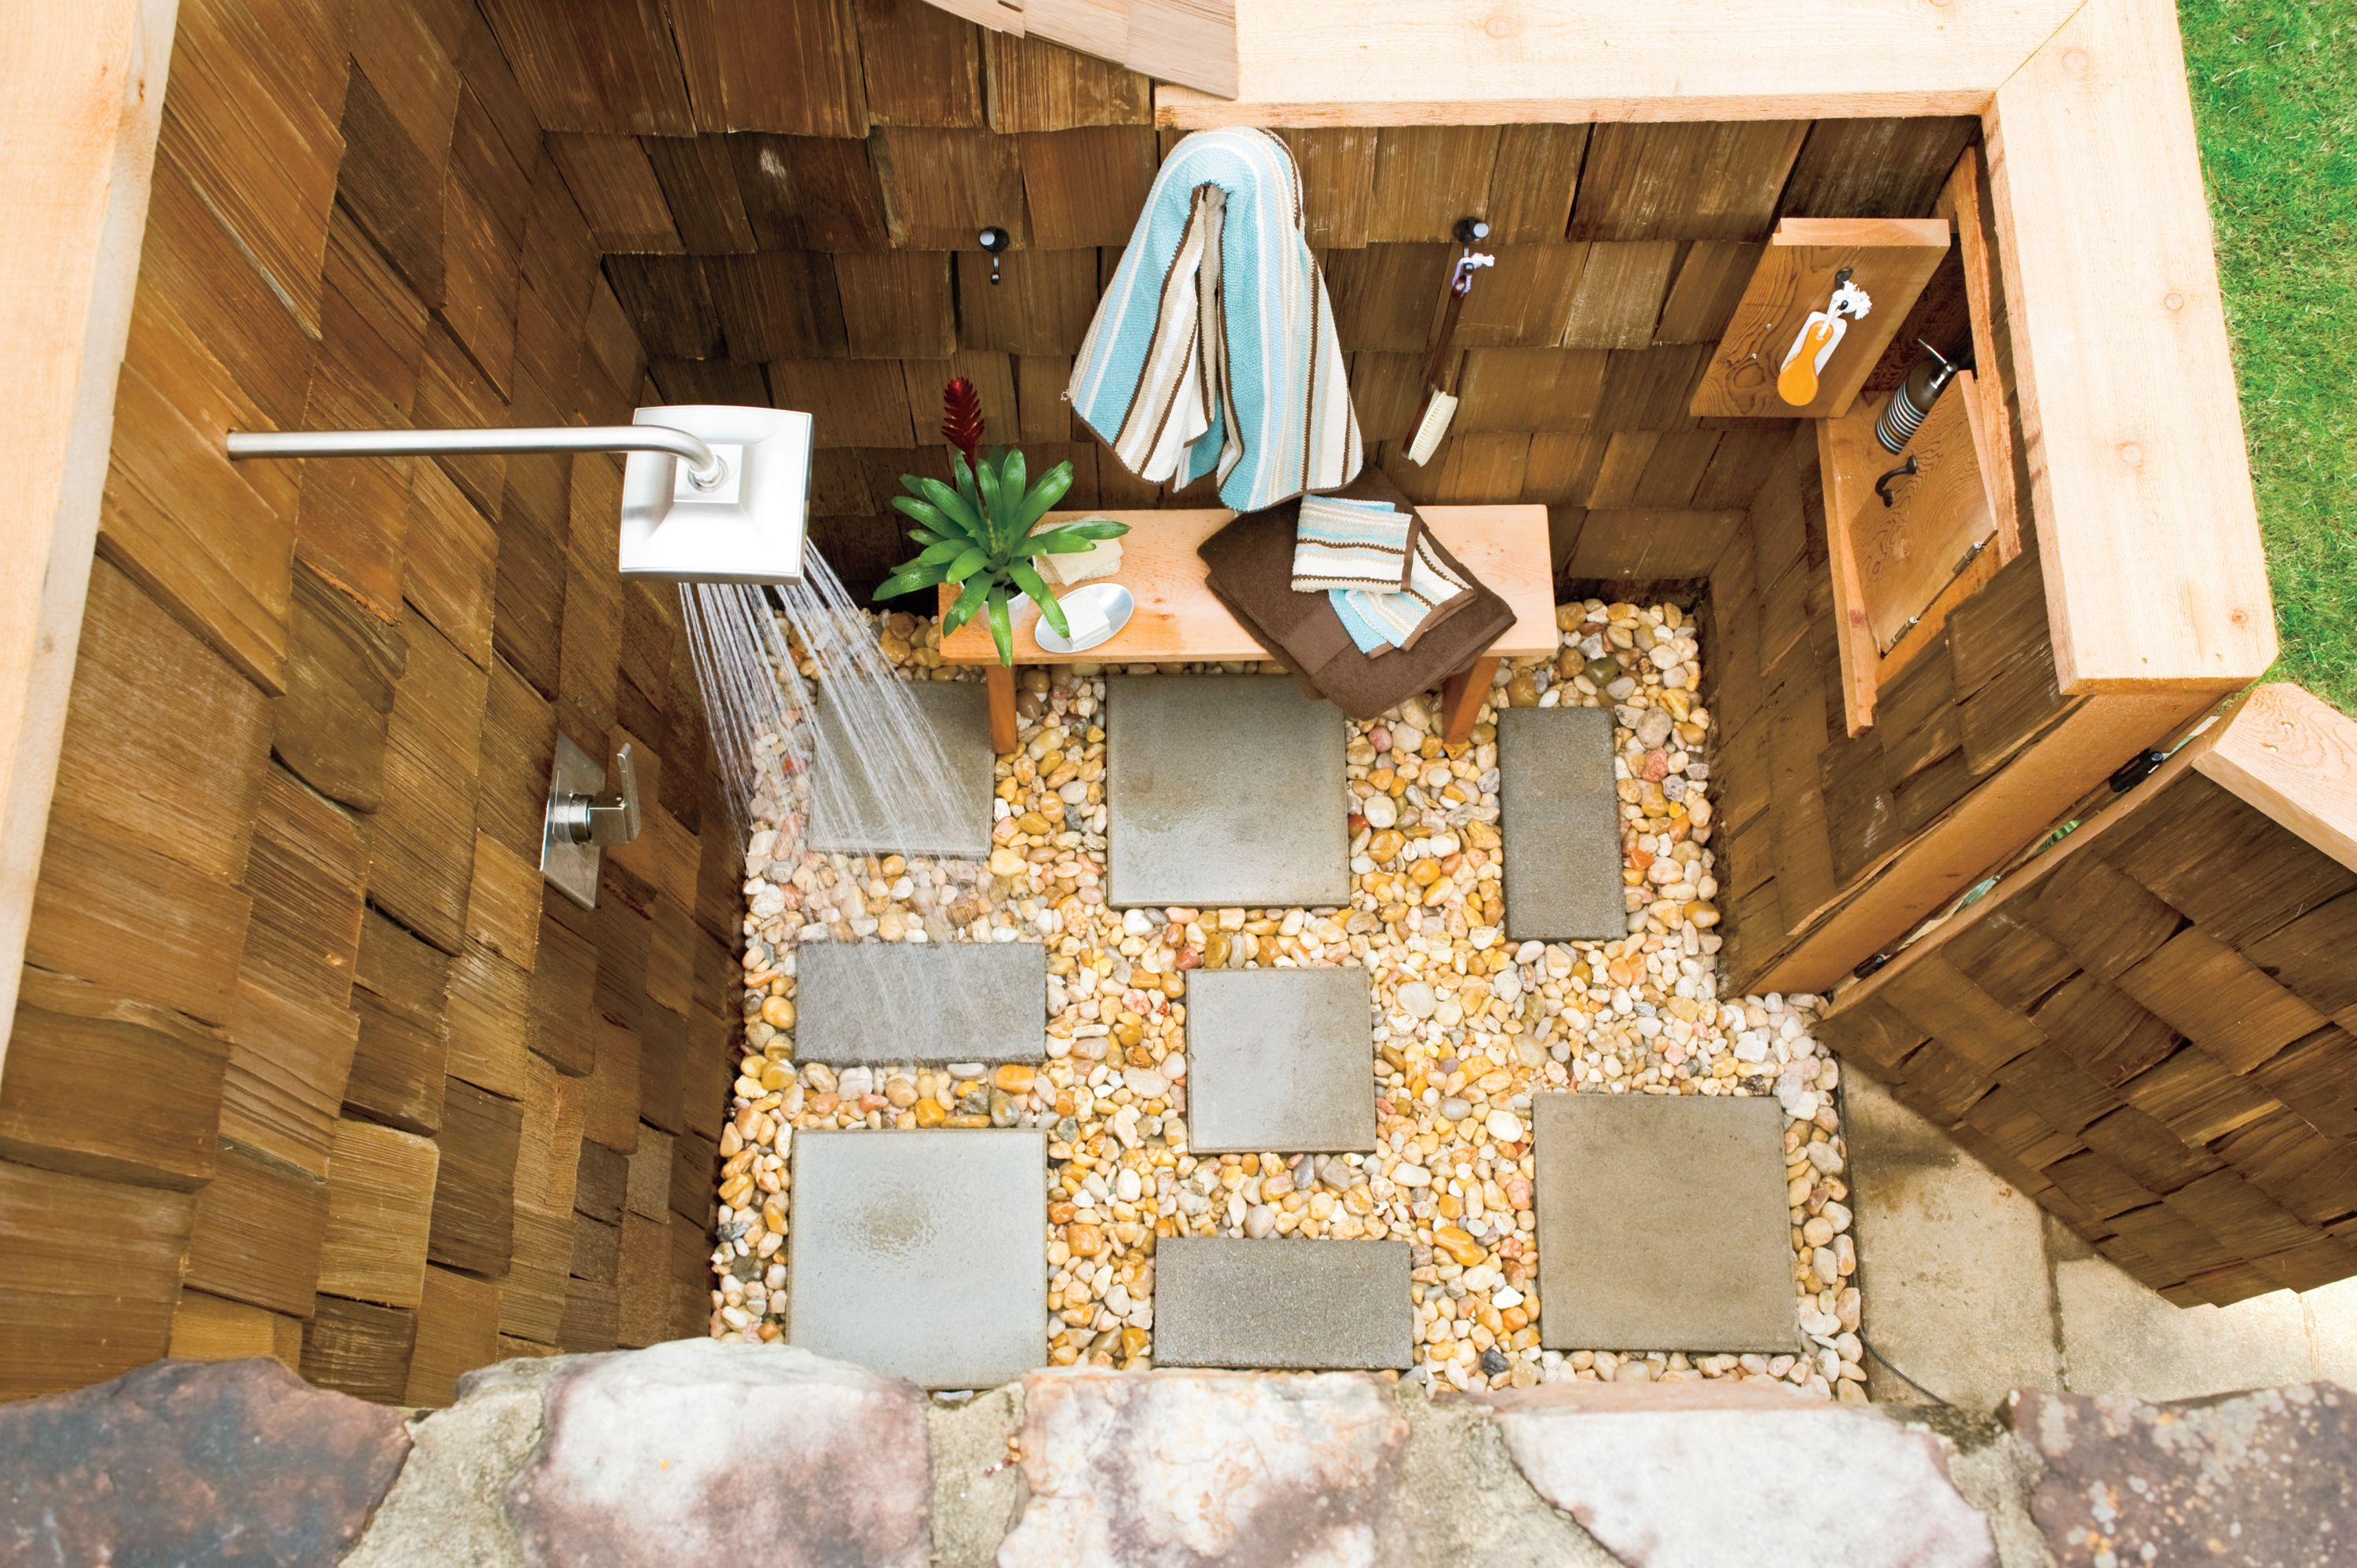 outdoor shower. Really like the stone/pebble floor and enclosure.